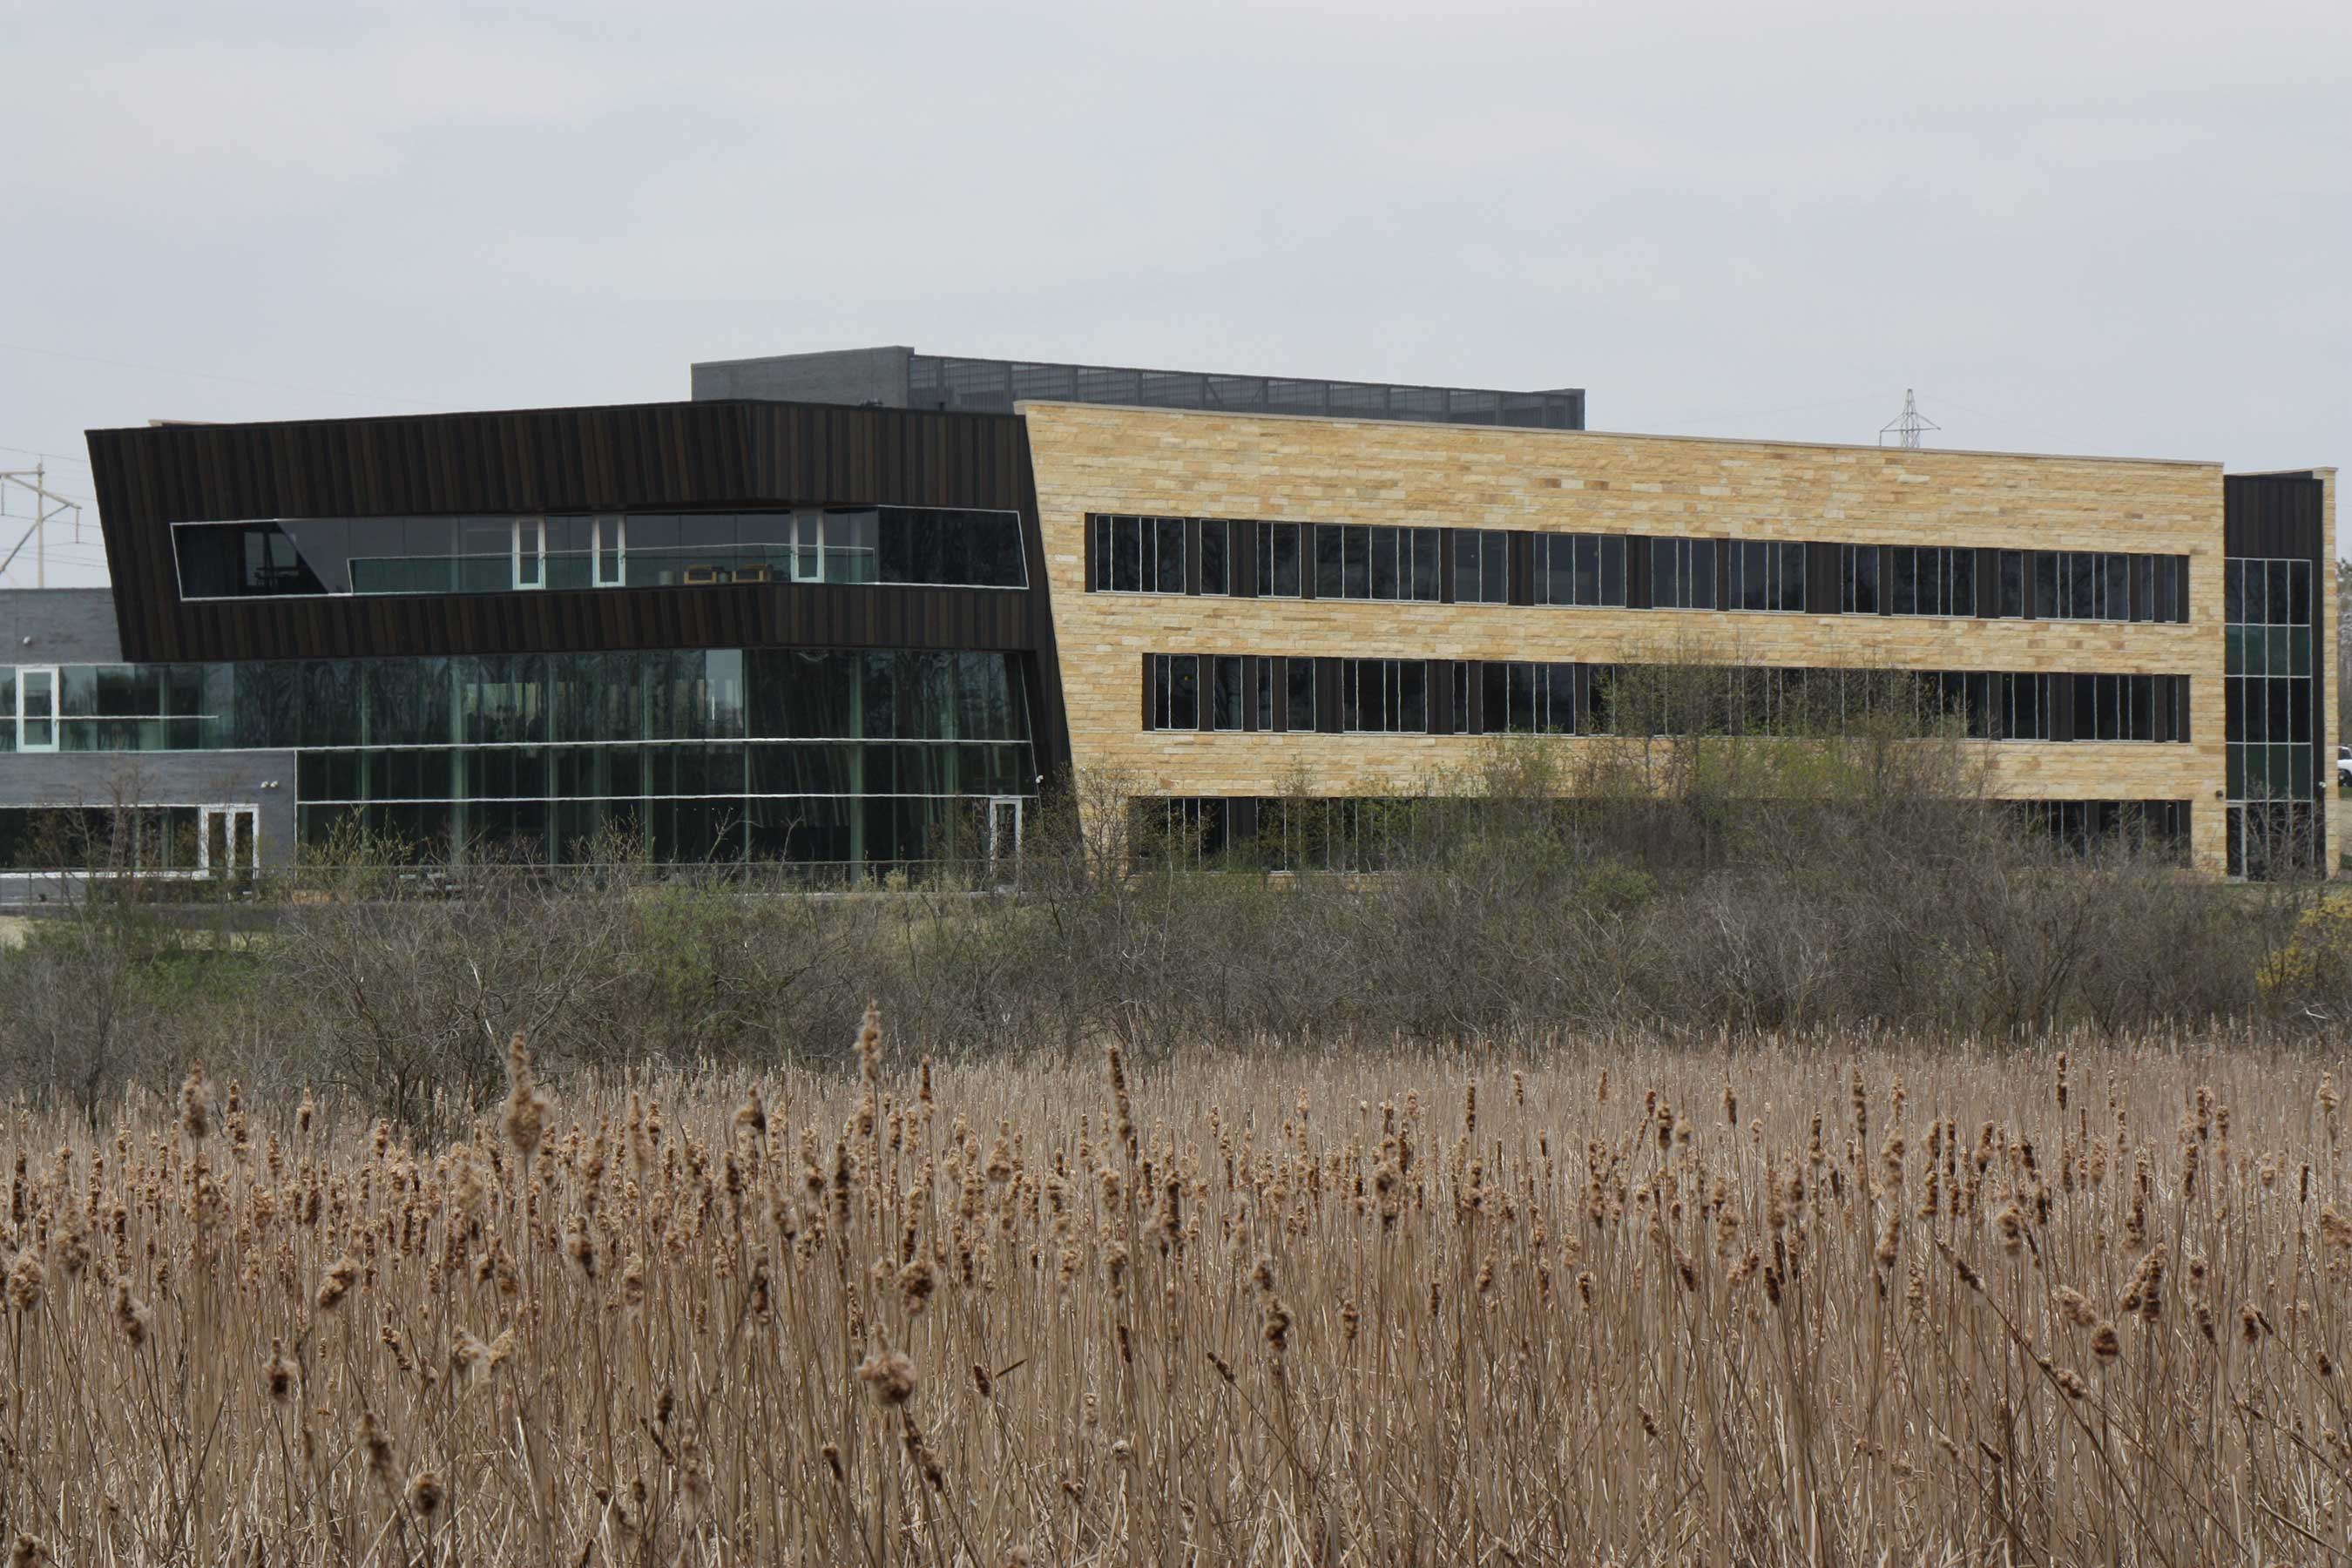 Anytime Fitness and its parent company, Self Esteem Brands, along with its sister franchise, Waxing The City, recently moved into new offices in Woodbury, MN.